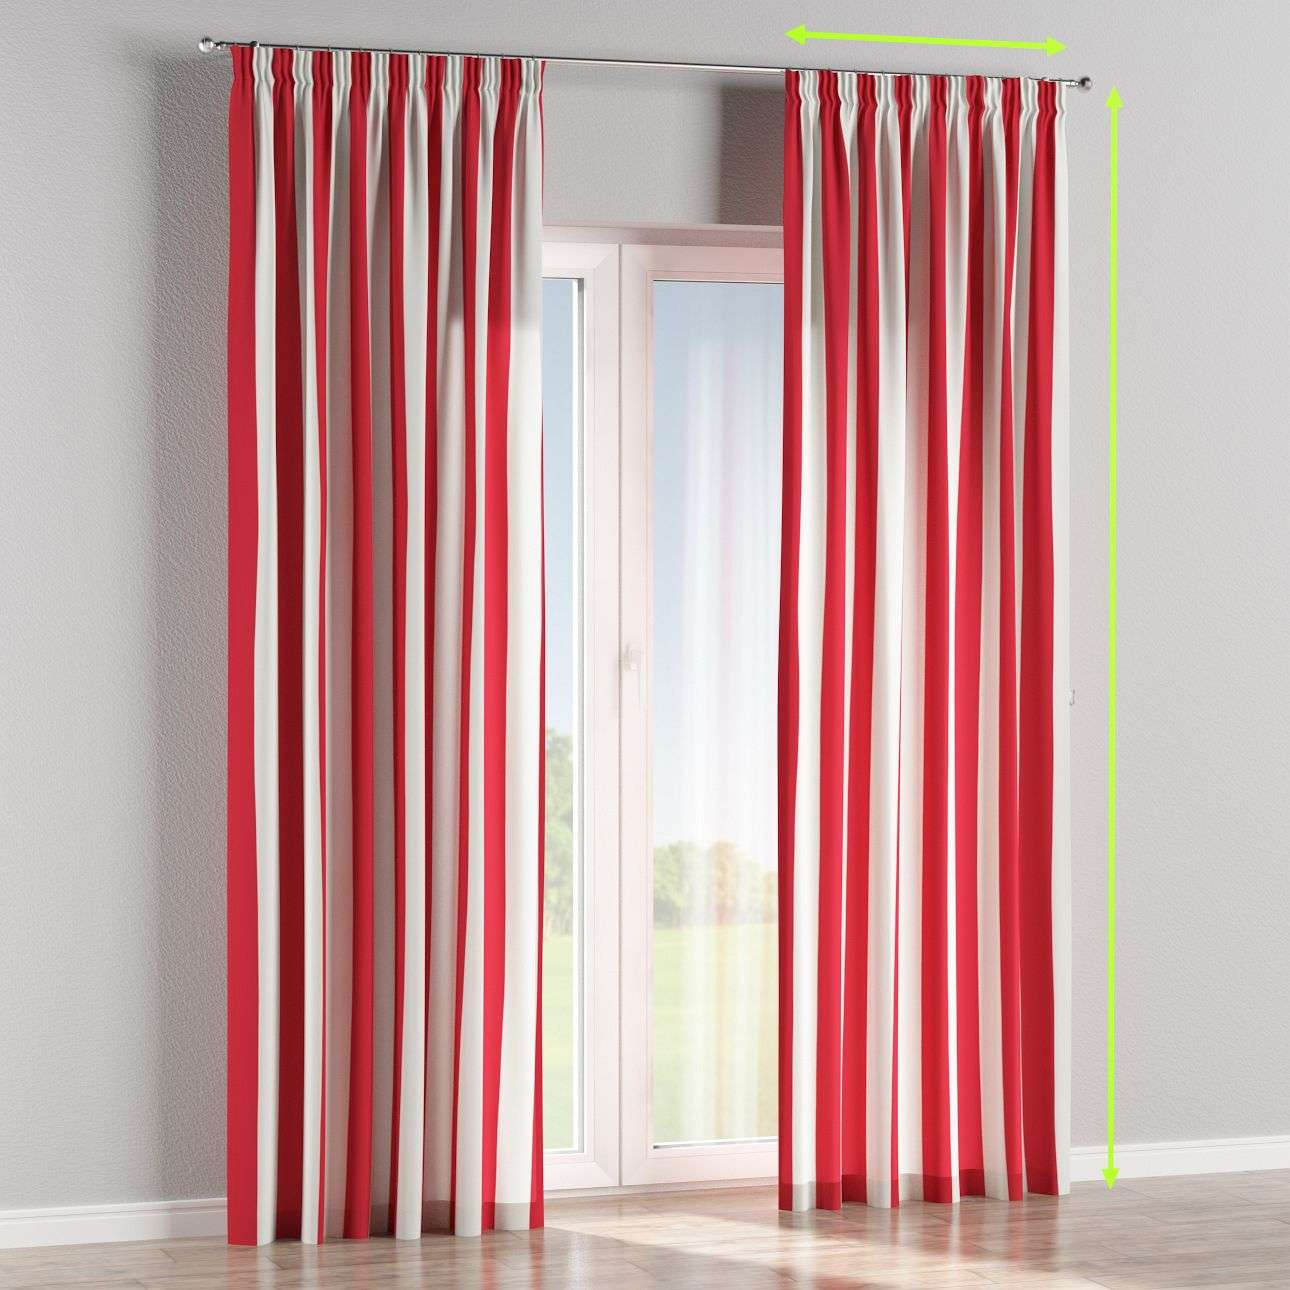 Pencil pleat curtains in collection Comic Book & Geo Prints, fabric: 137-54